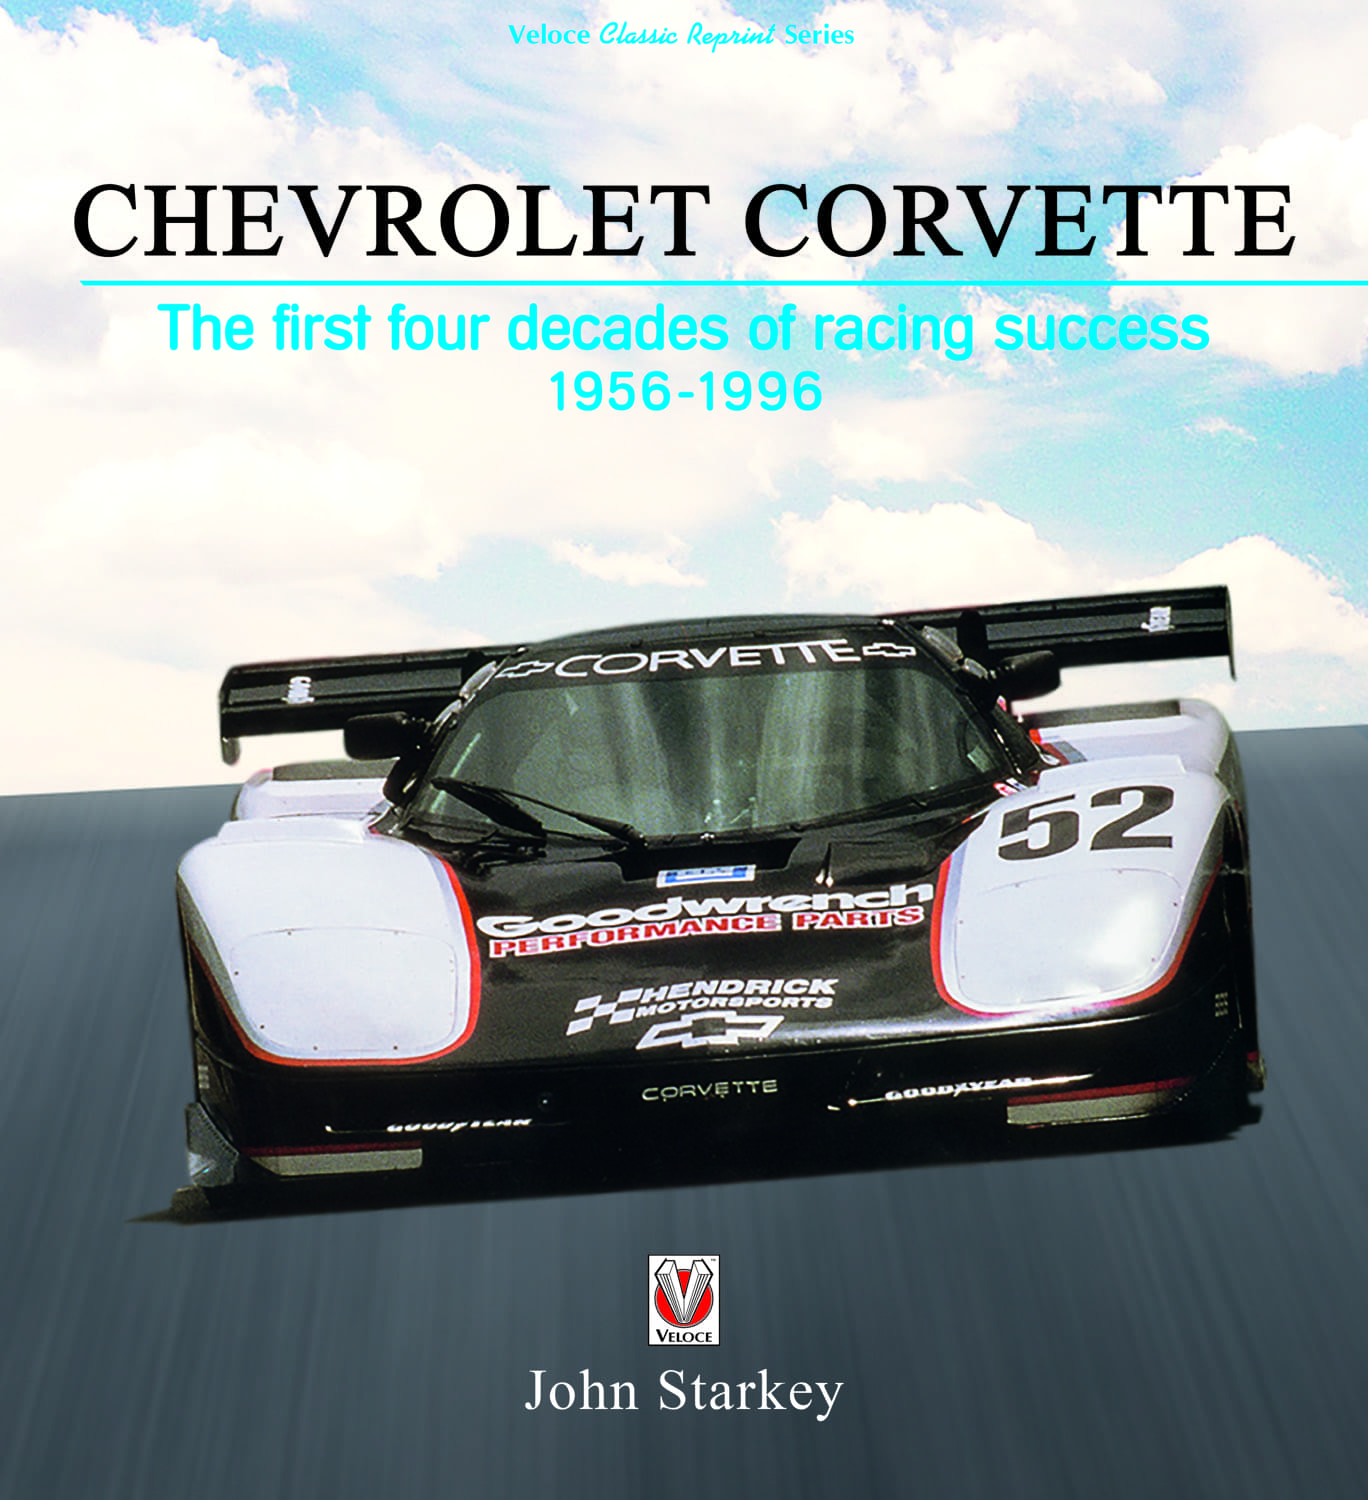 Chevrolet Corvette – The first four decades of racing success 1956-1996 cover